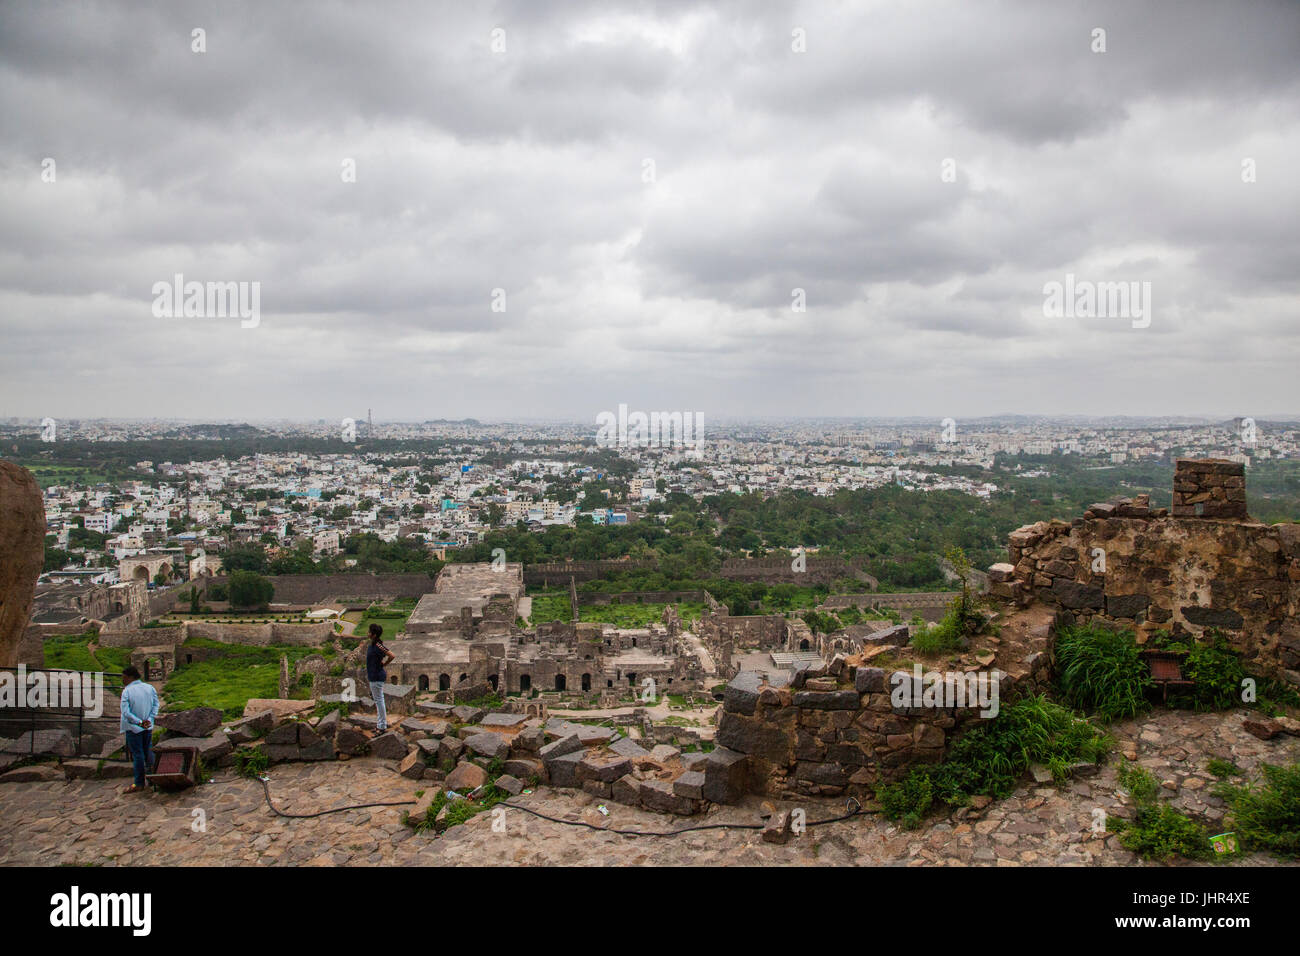 A view of the city of Hyderabad from atop Golconda Fort, India - Stock Image